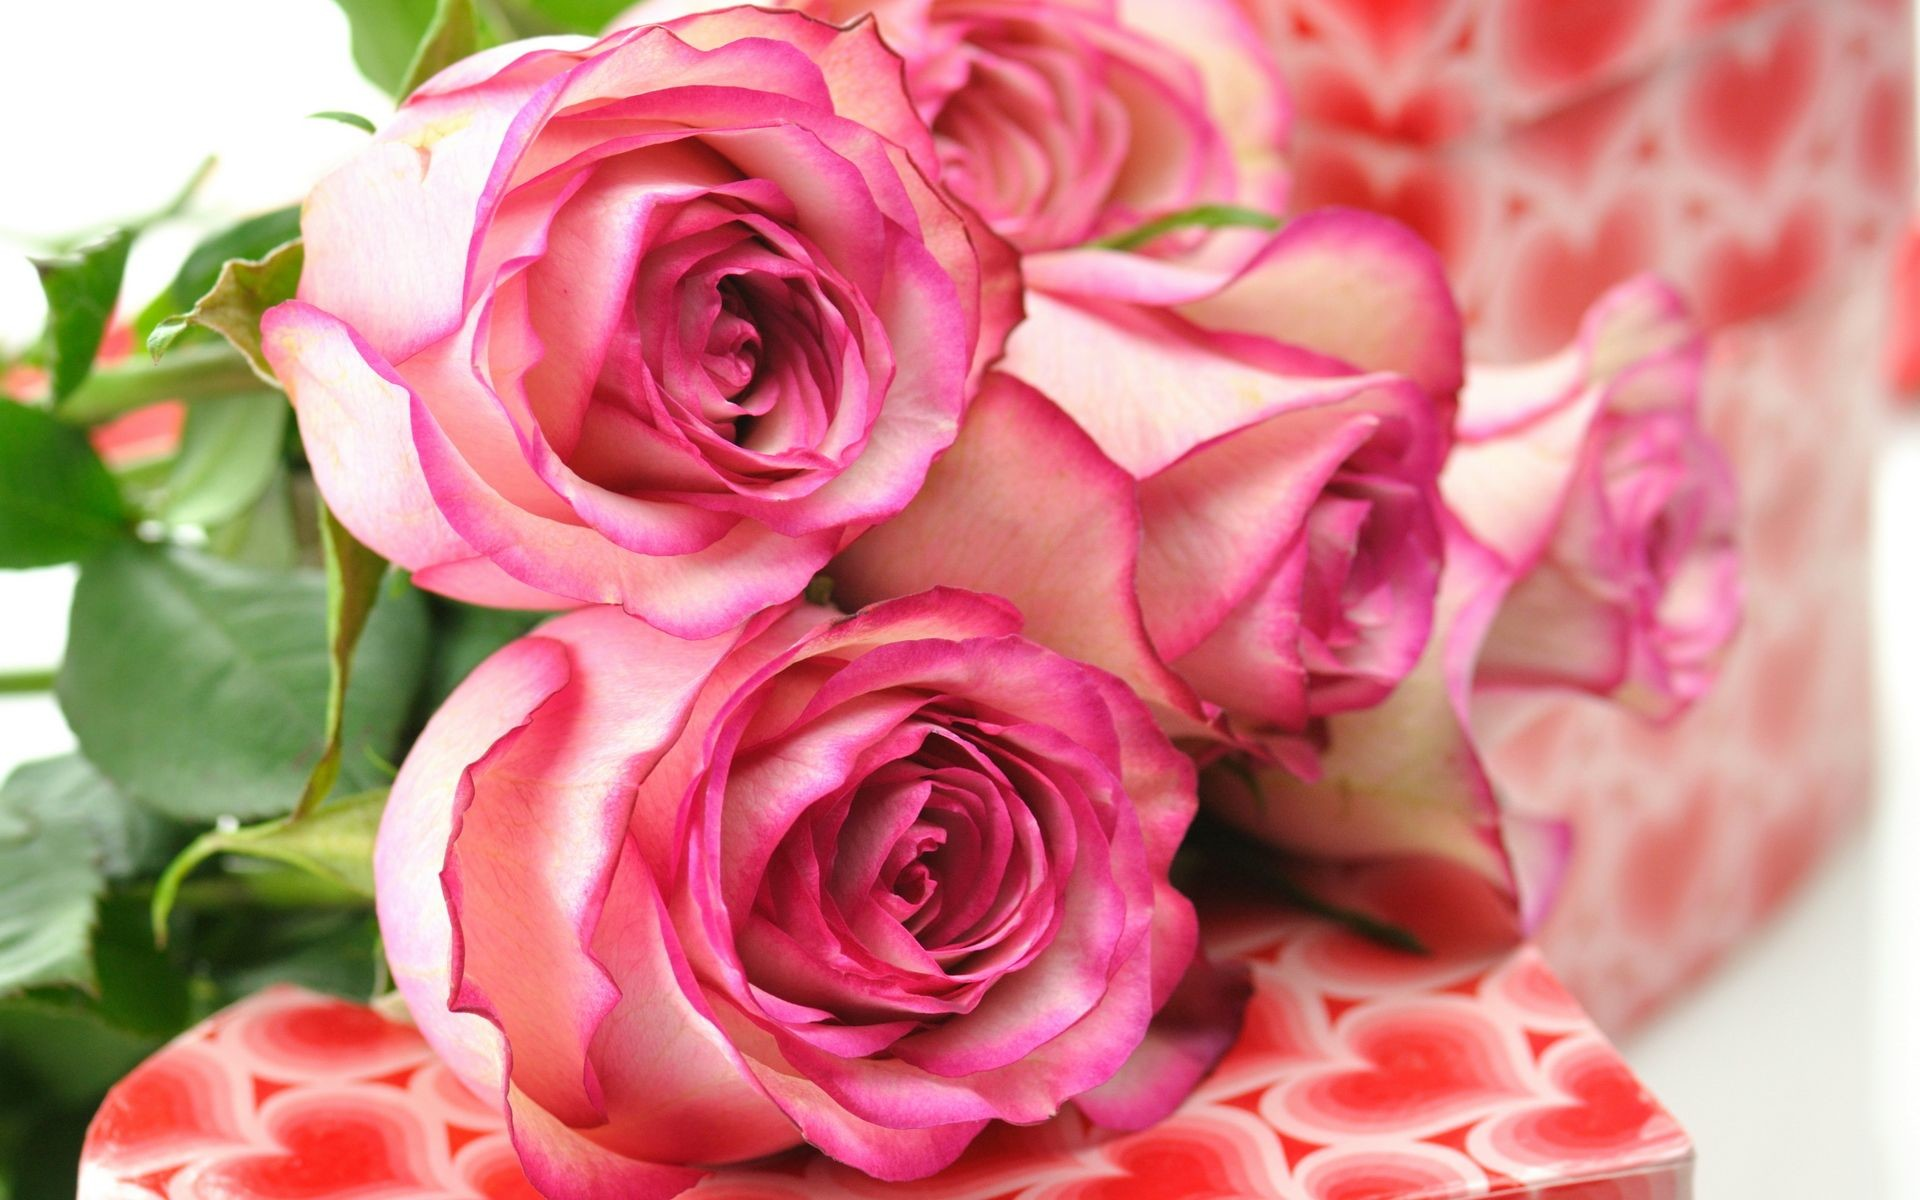 beautiful roses wallpapers ·①